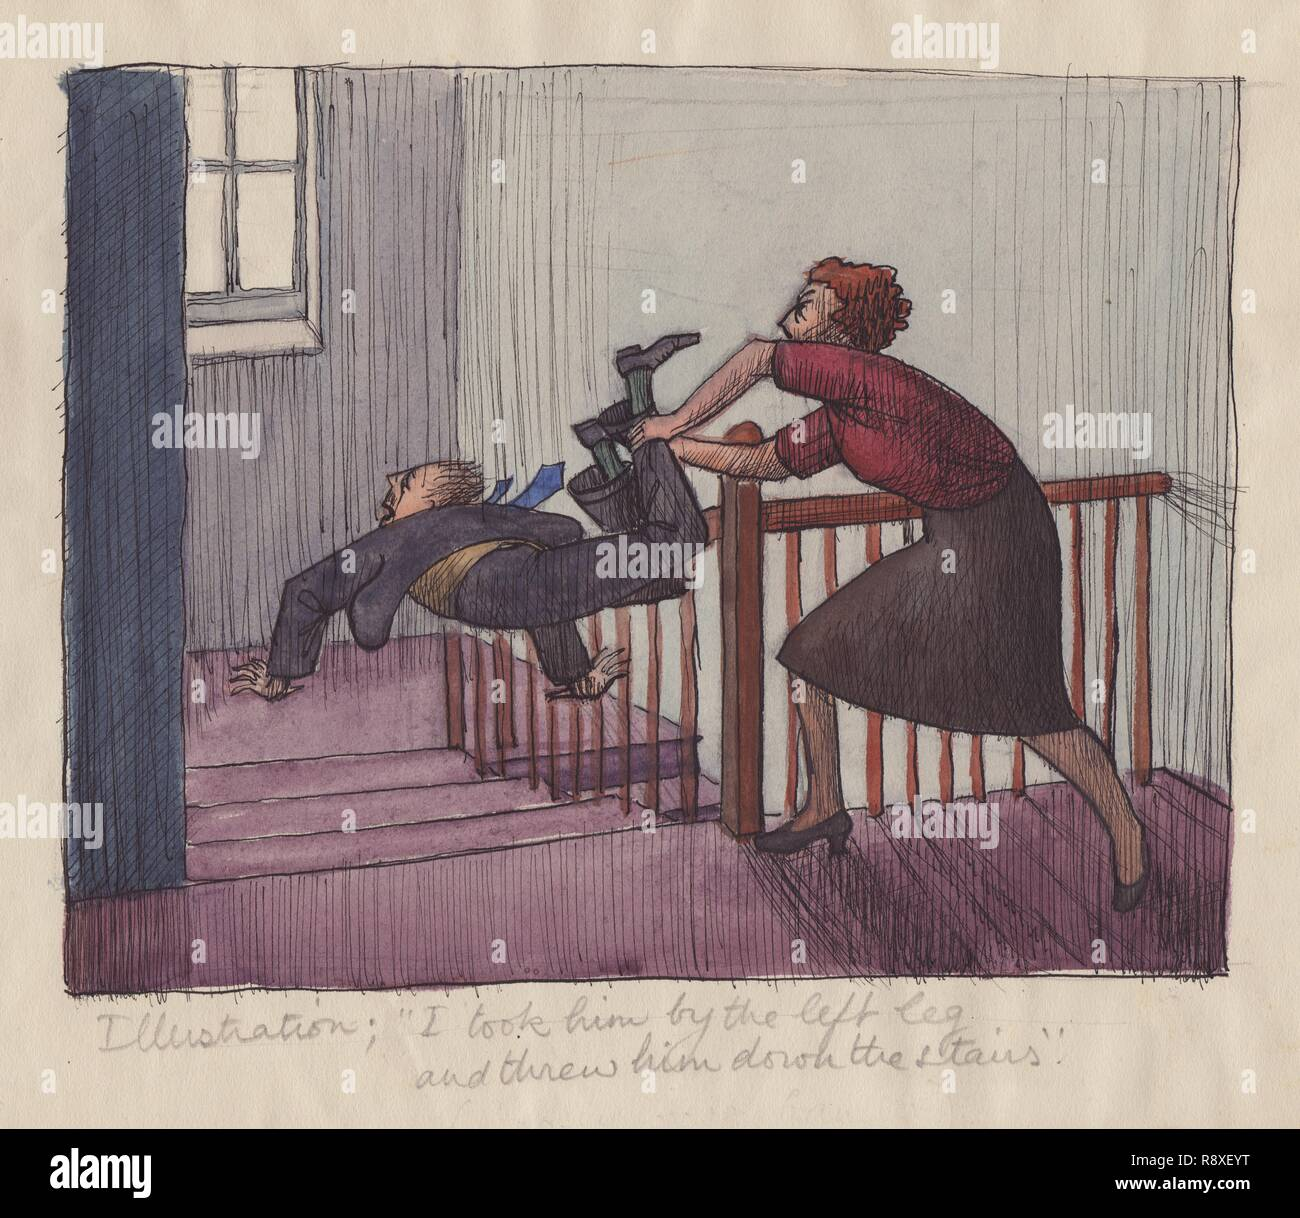 "'I took him by the left leg and threw him down the stairs', 1952. Illustration to children's nursery rhyme ""Goosey, goosey gander"": '...Ther - Stock Image"